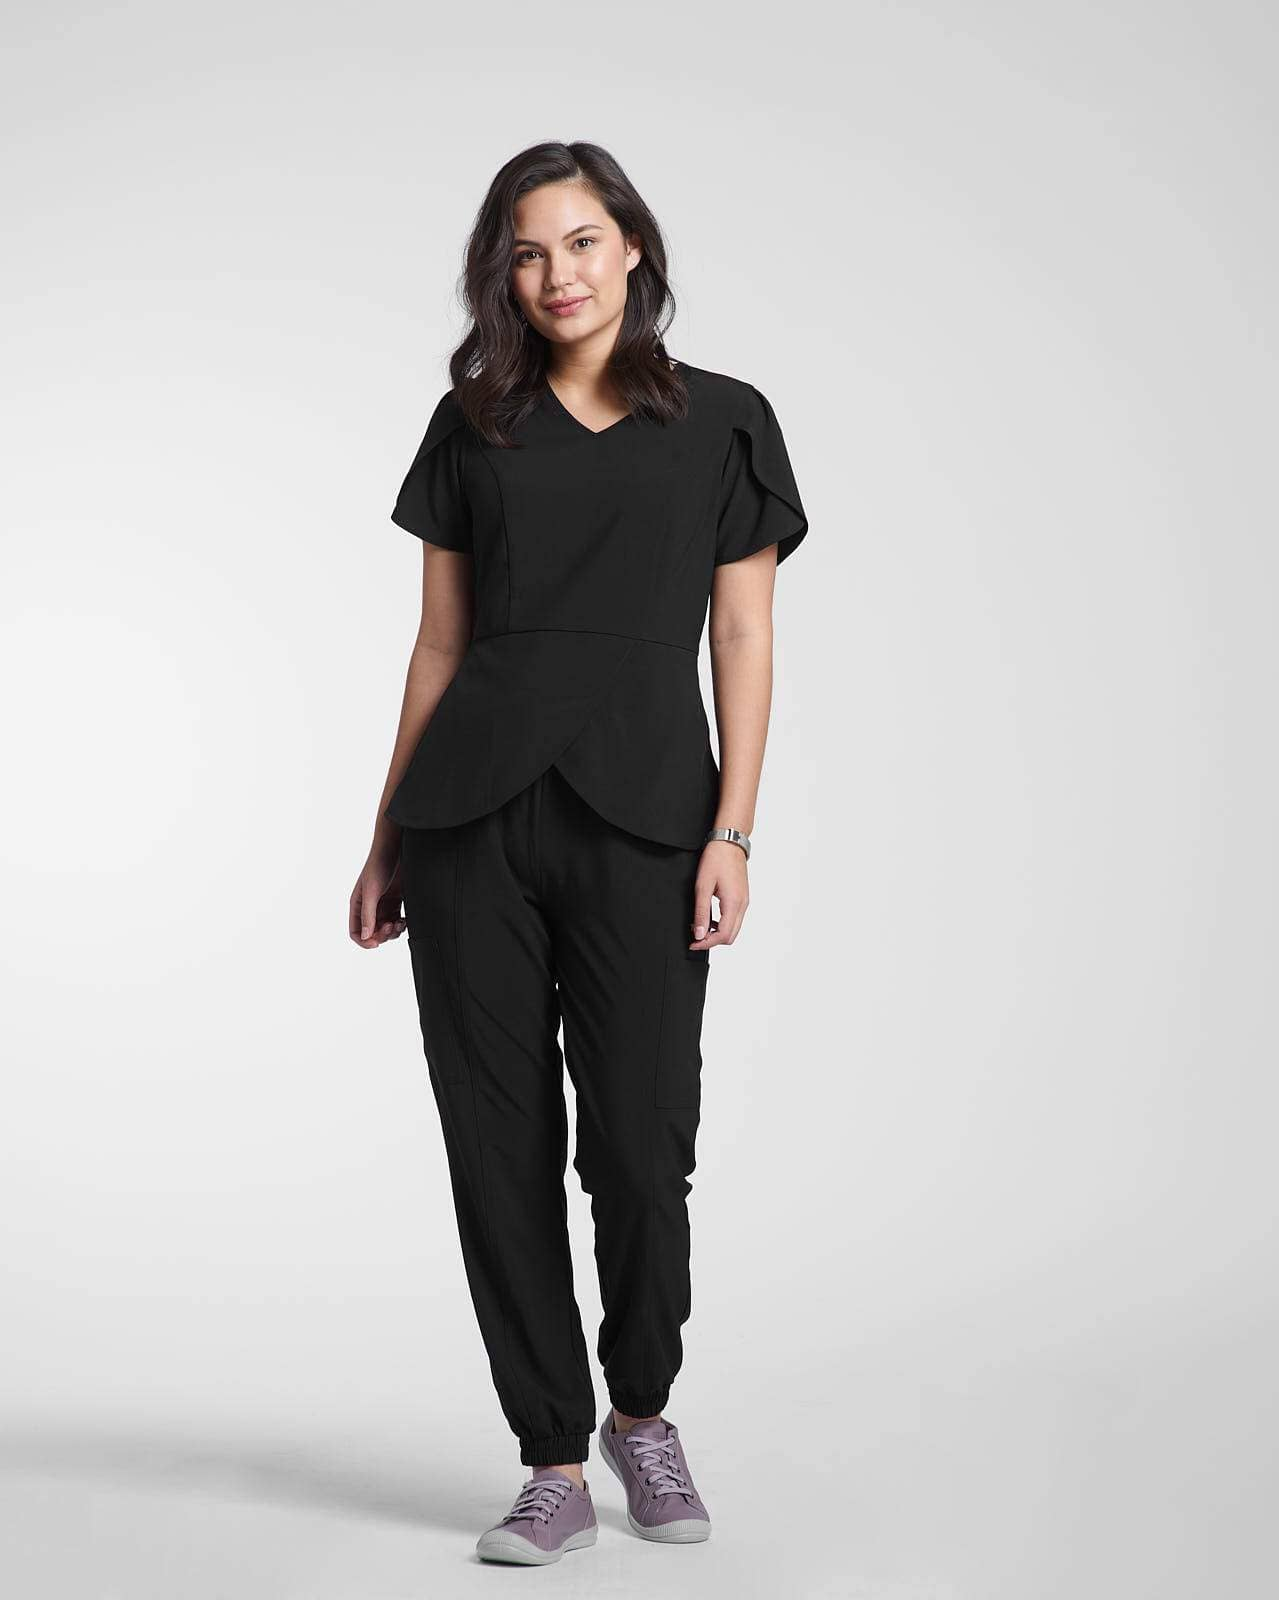 Black Scrubs for women by Happily Scrubbed